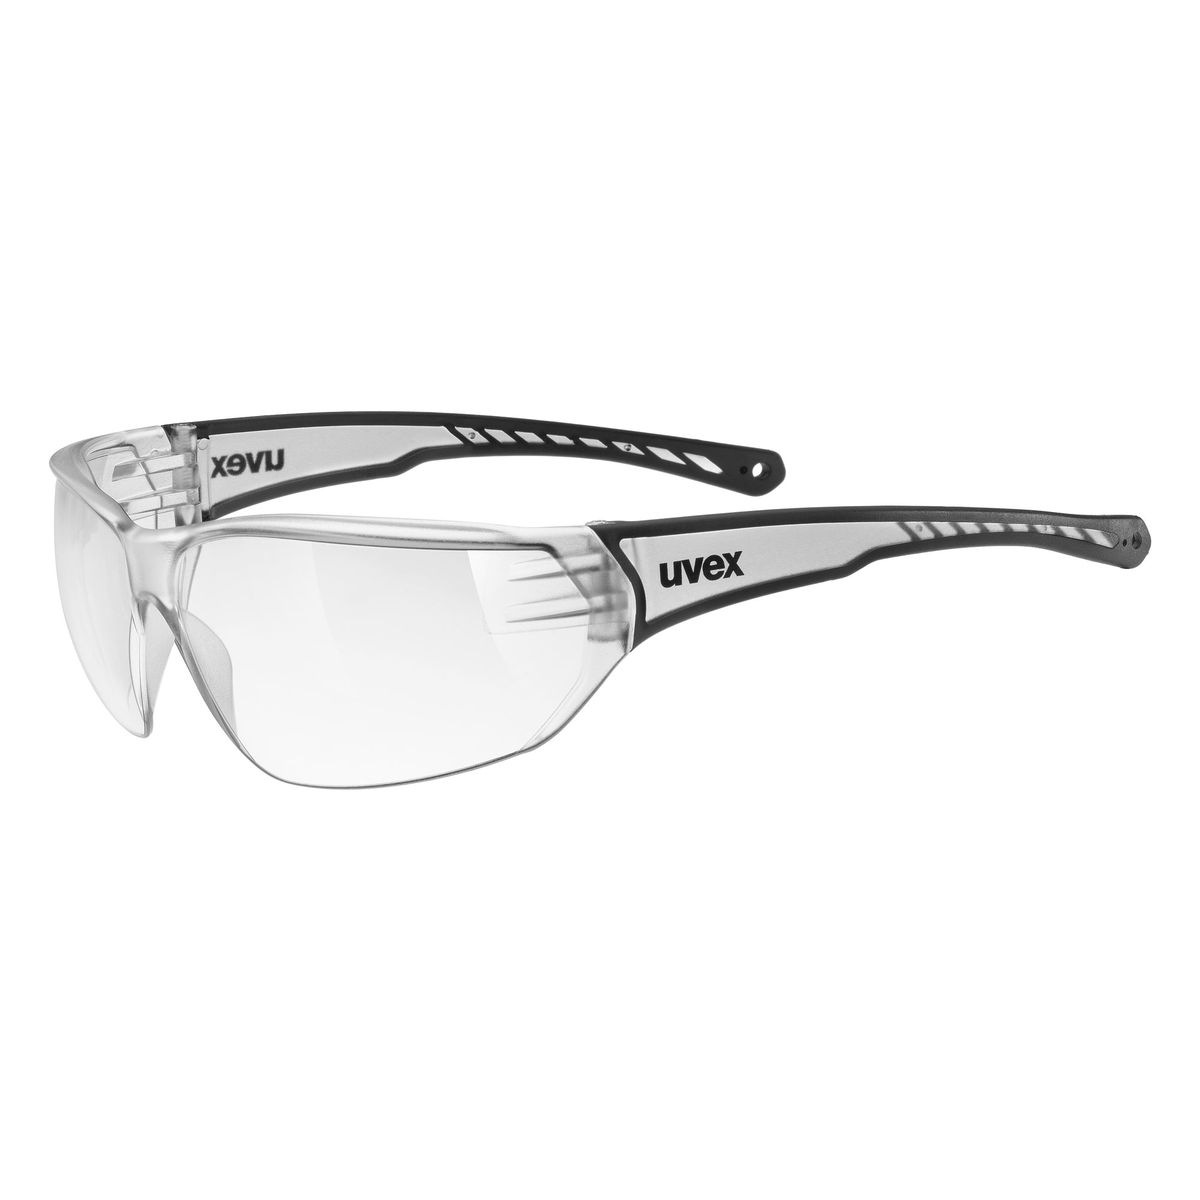 SPORTSTYLE 204 glasses